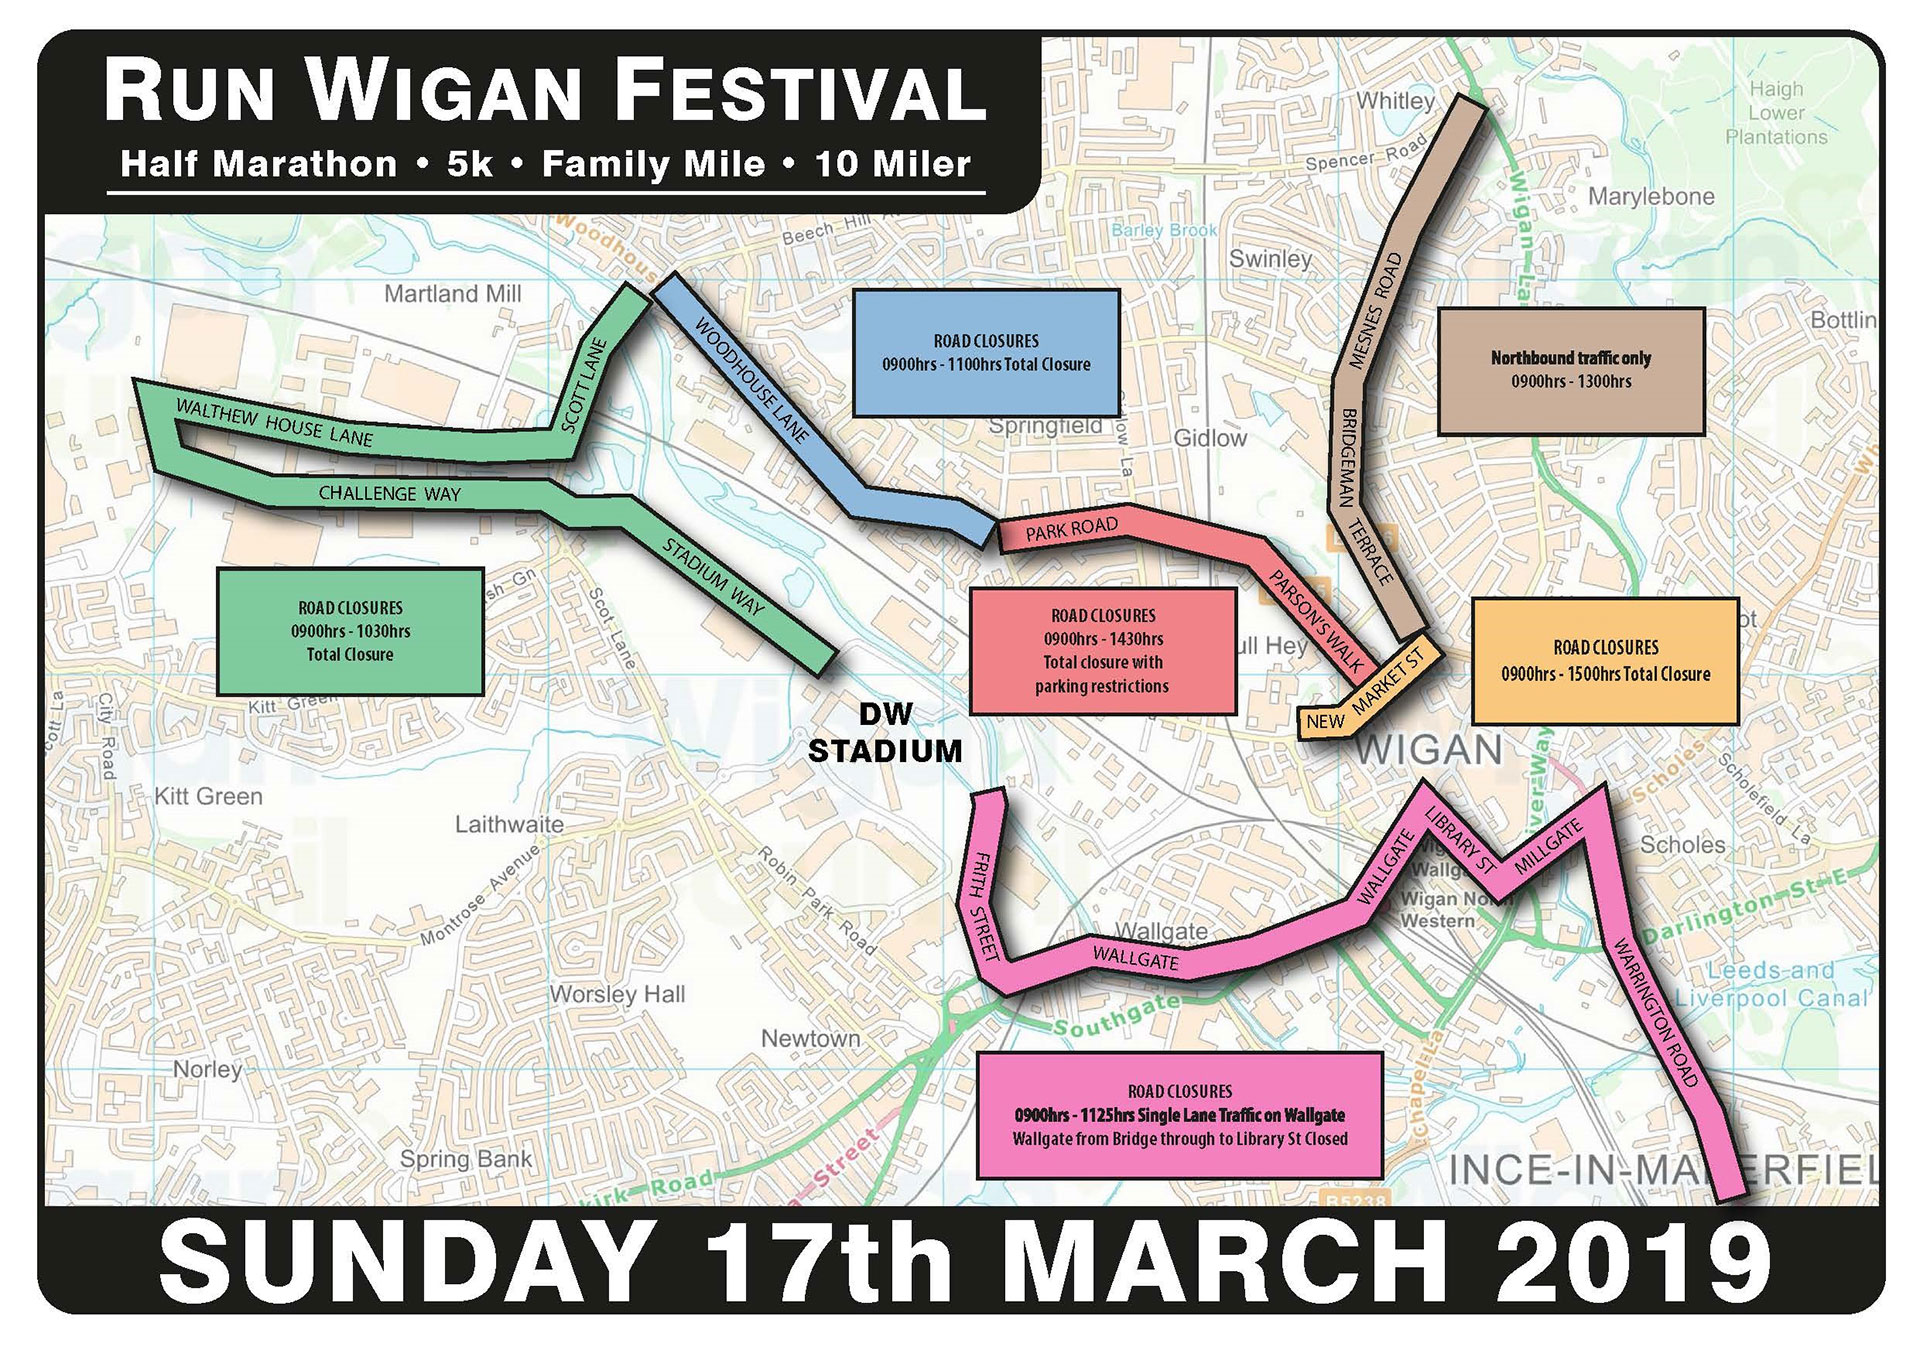 Run Wigan Festival road closures